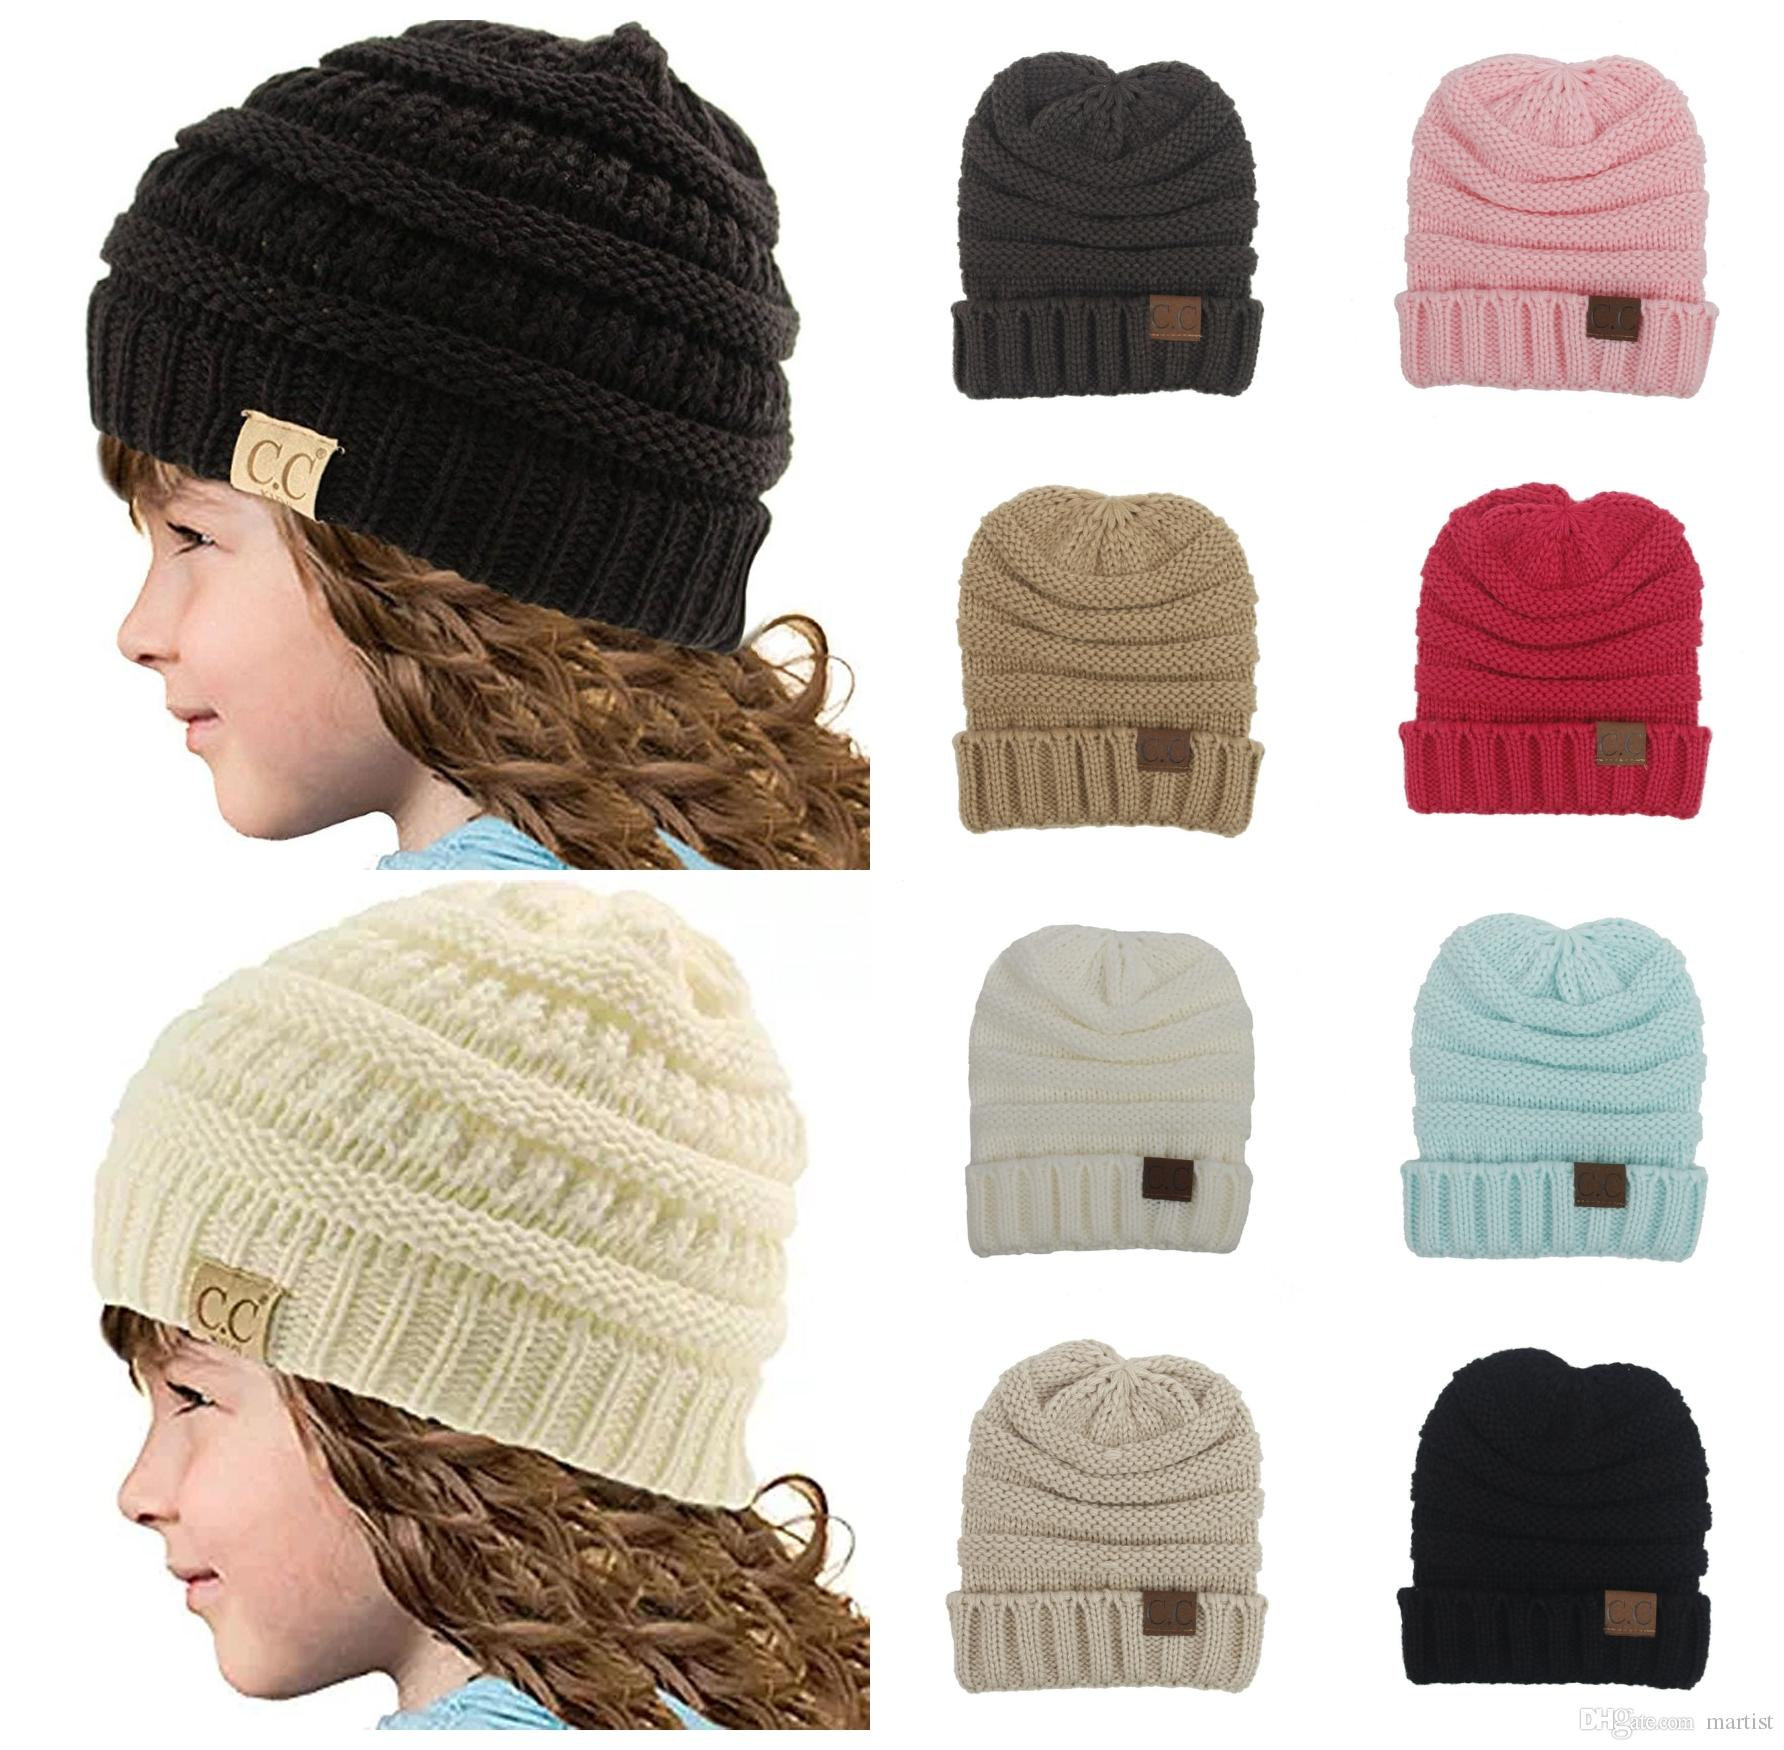 Compre Brief Cc Baby Beanie es Sombreros Winter Warm Headware Recién ...